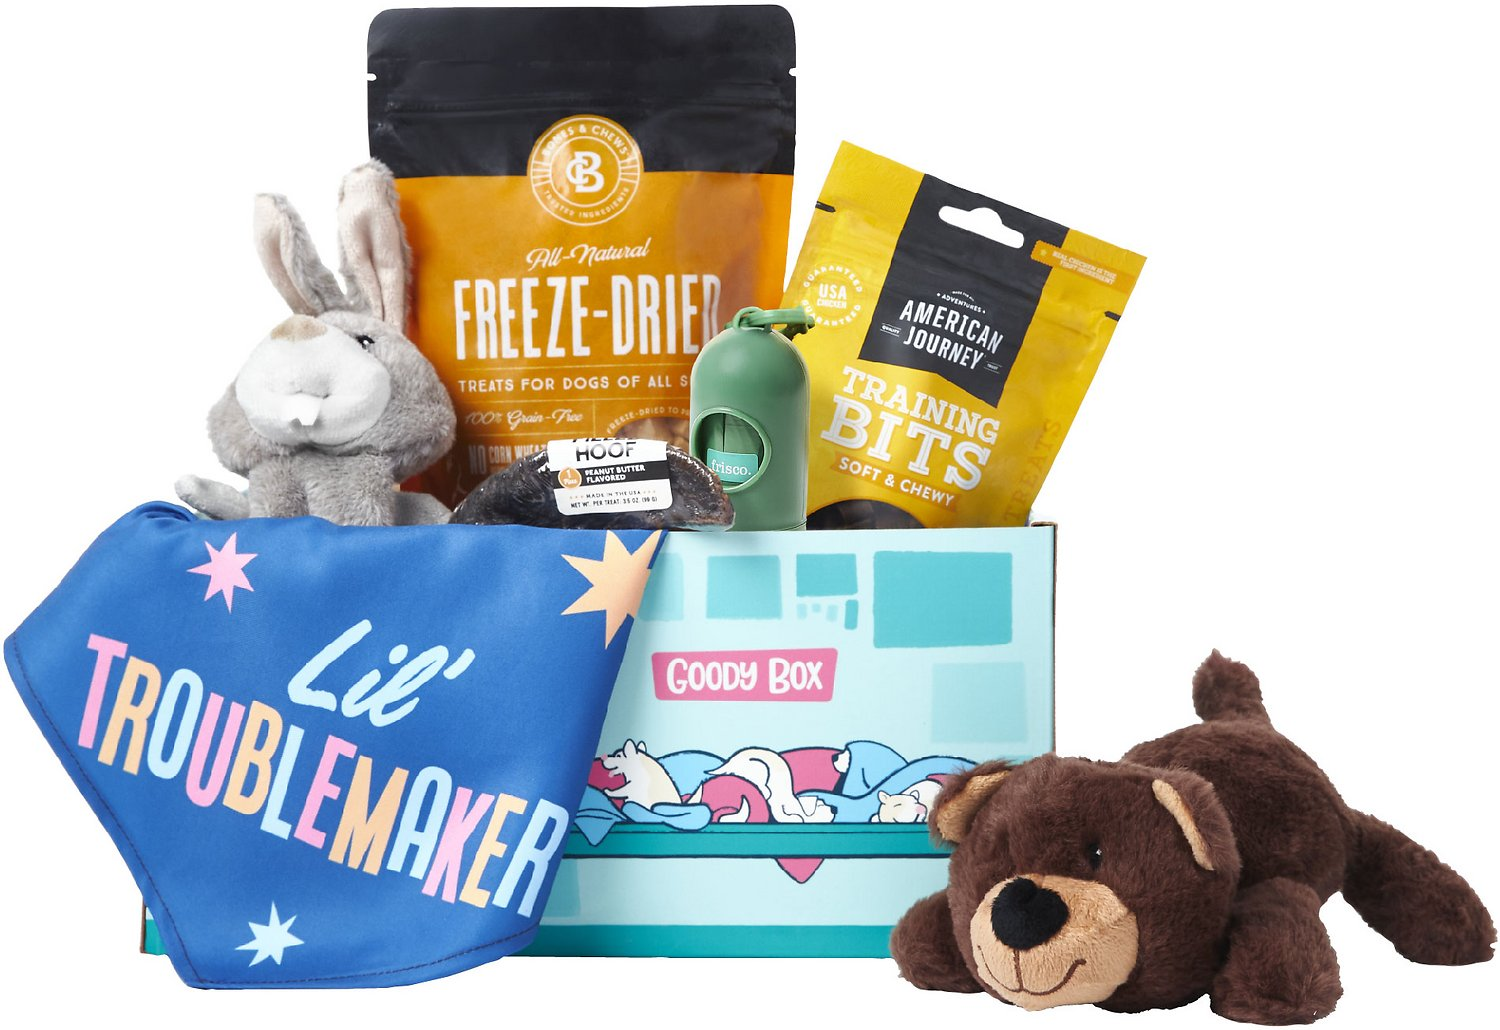 Chewy Goody box with dog treats, plush toys, poop bags, and dog bandana.